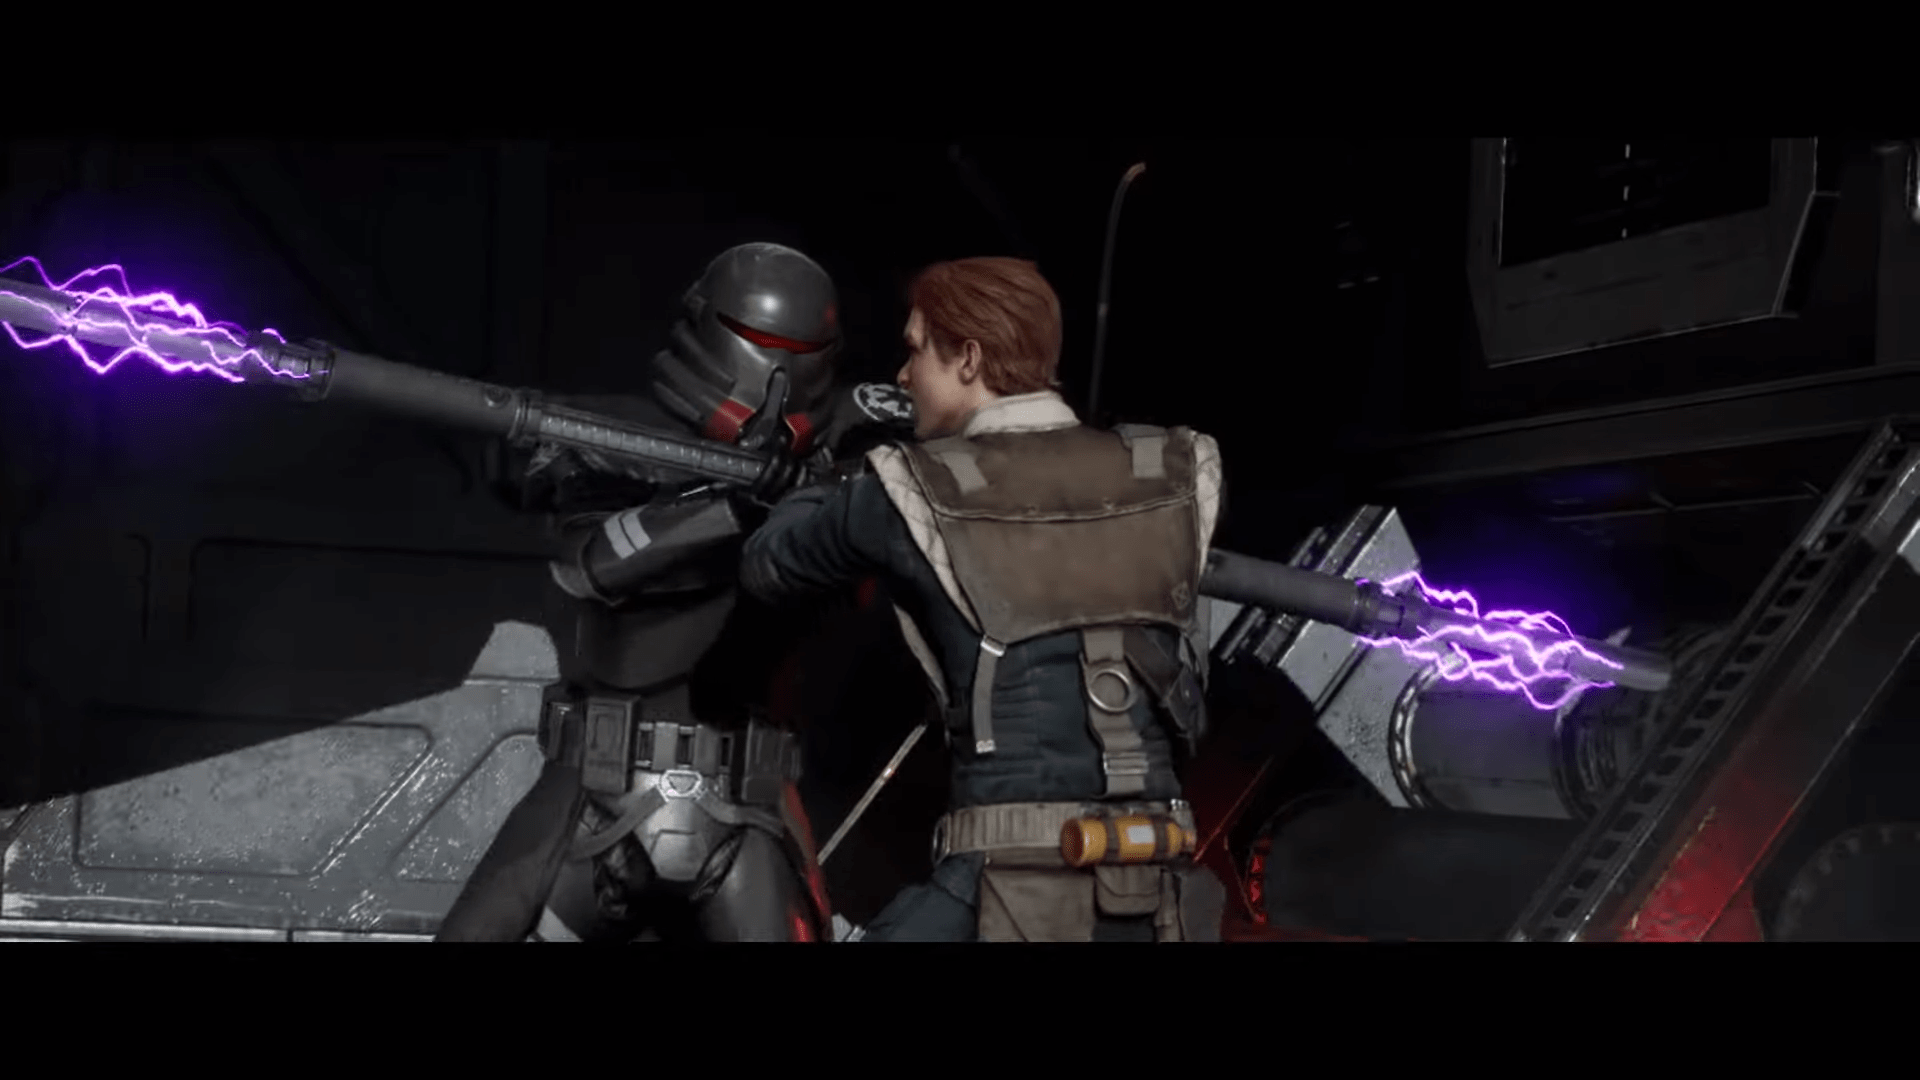 Jedi Fallen Order Parry Timing Reportedly Tied To Frame-Rate On PC, Resulting In Interesting Dynamics